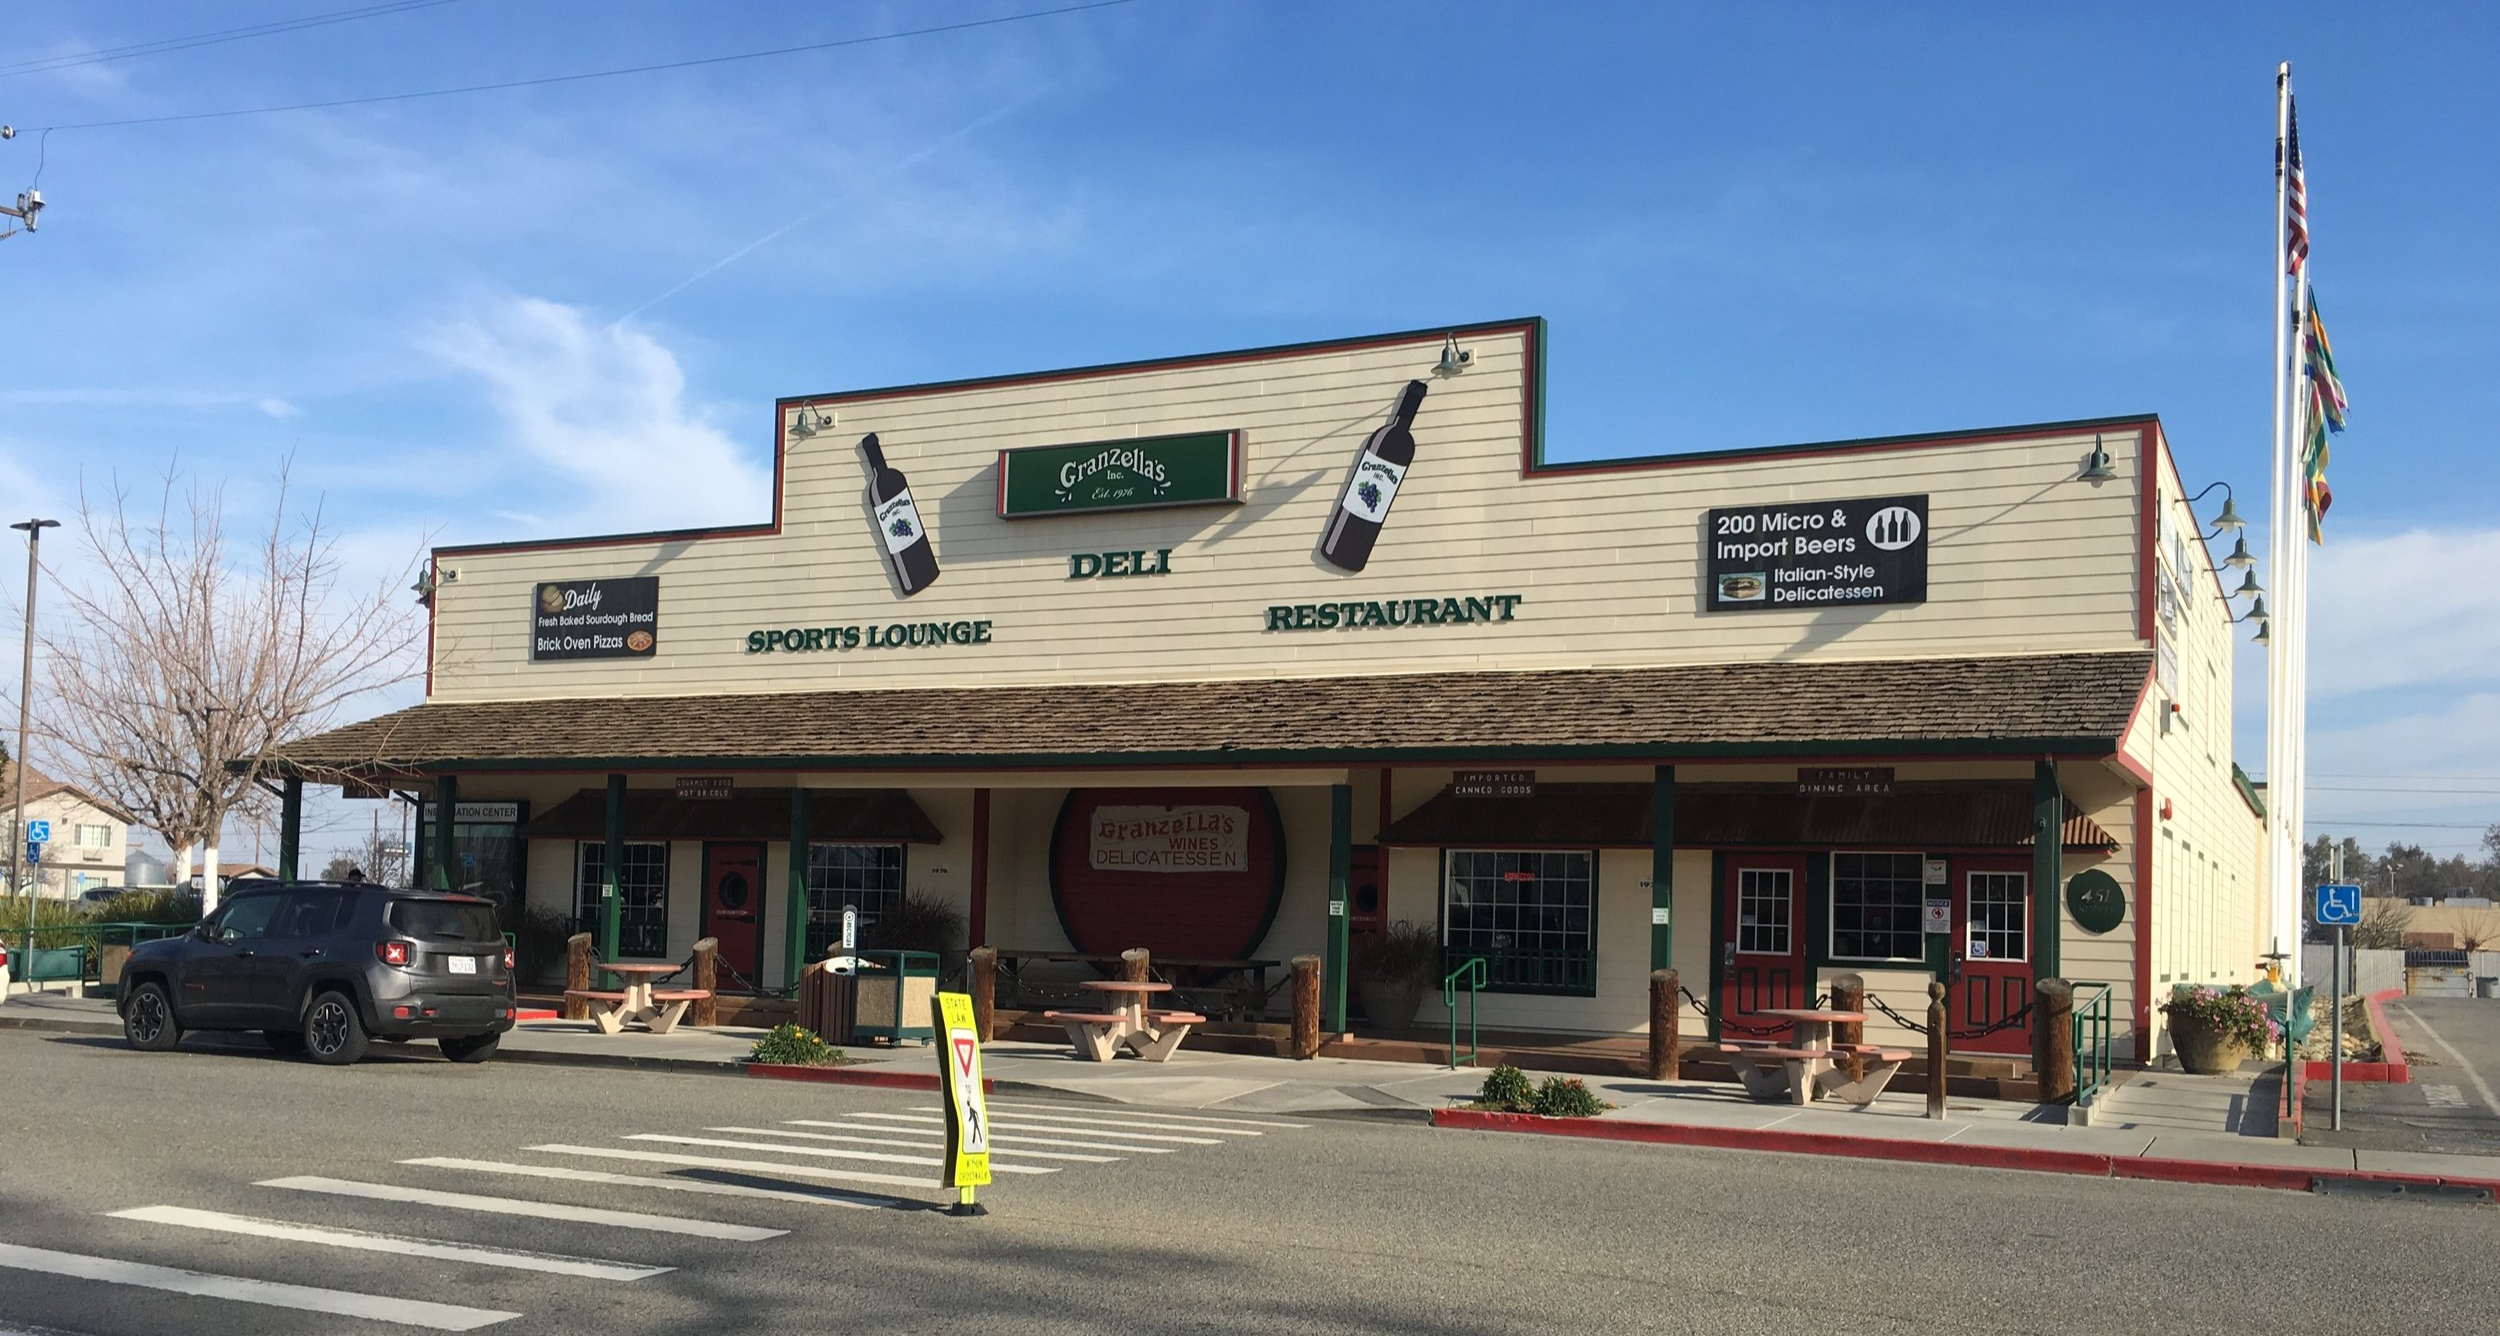 Review of Granzella's Restaurant in Williams, California